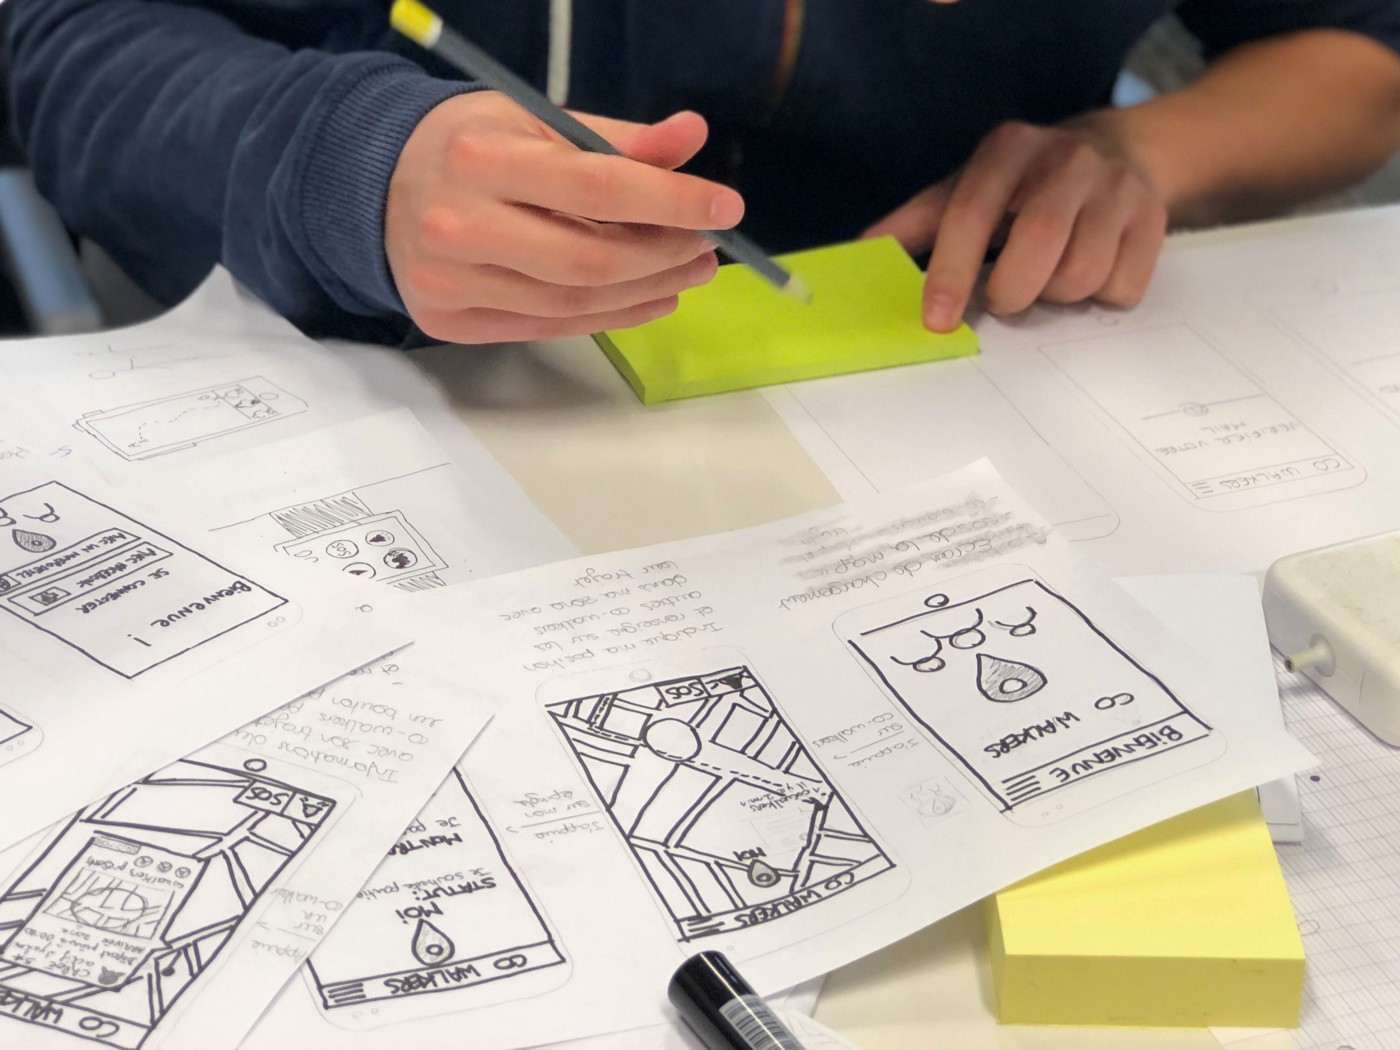 Hand-drawn screens of a prototype for an app